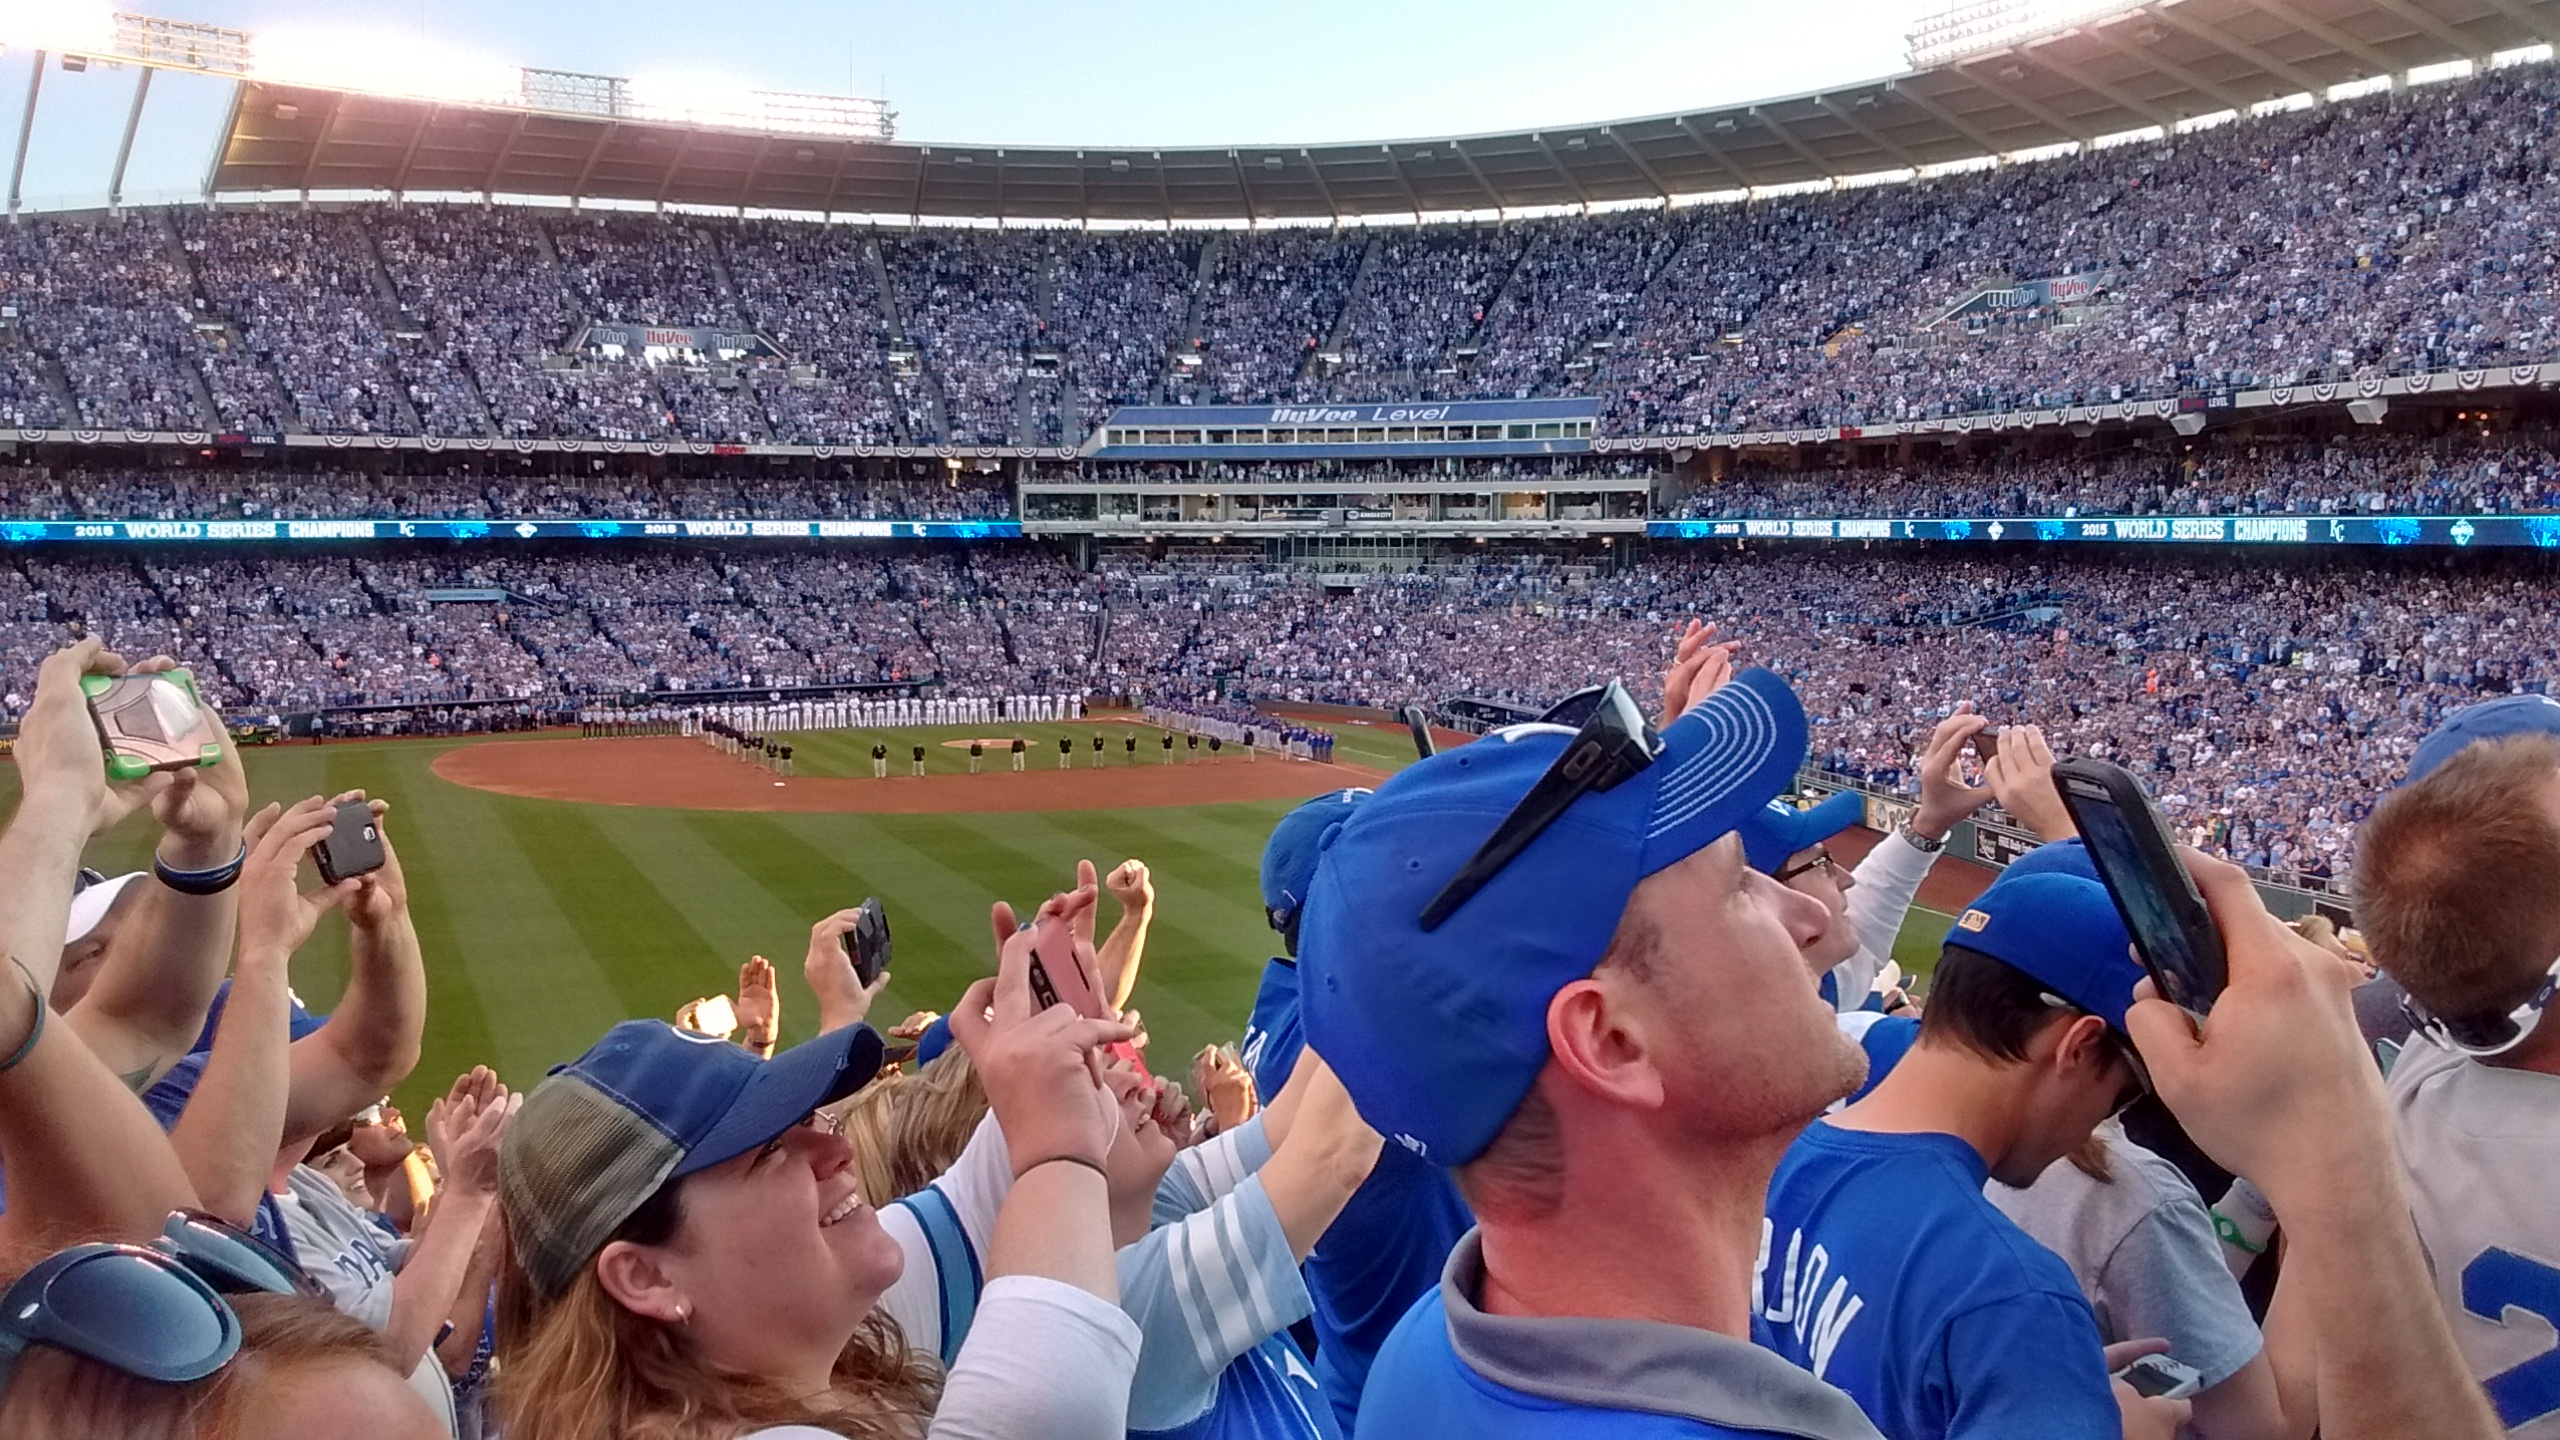 The Royals lost their home opener to the Oakland A's Monday.  This photo, by Greg Echlin, is from opening day in 2016.